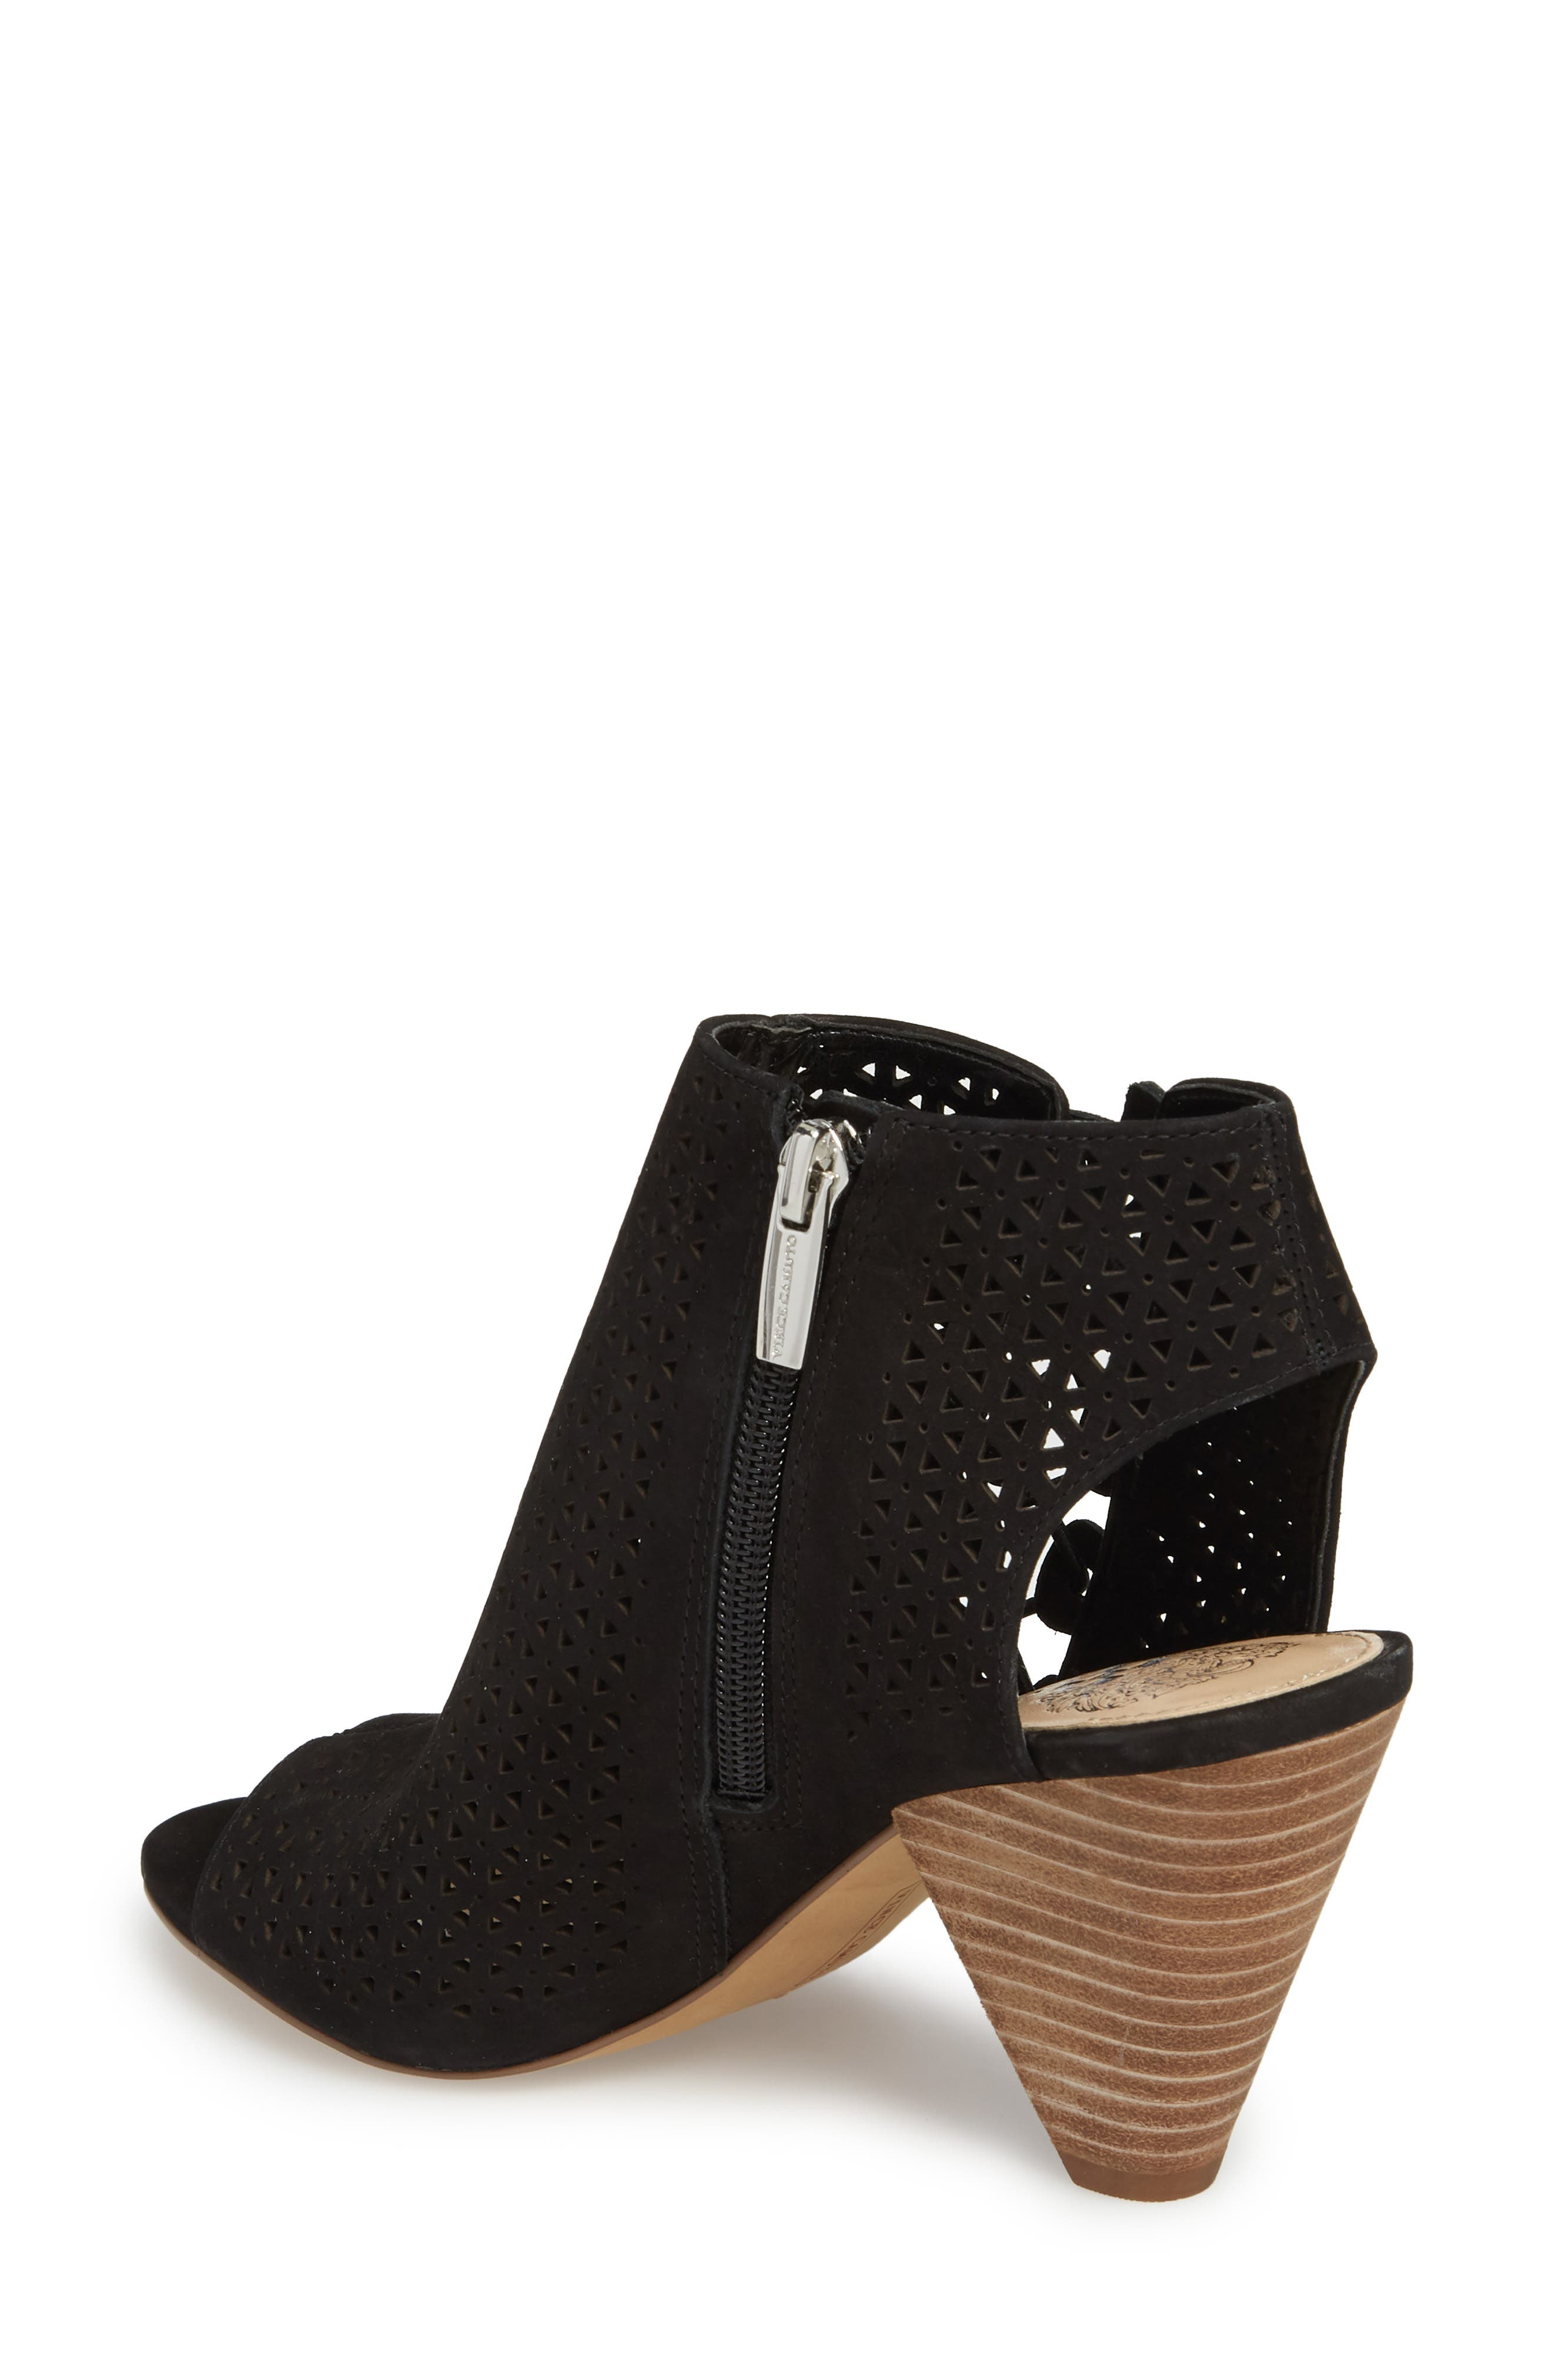 Elison Bootie,                             Alternate thumbnail 2, color,                             Black Leather